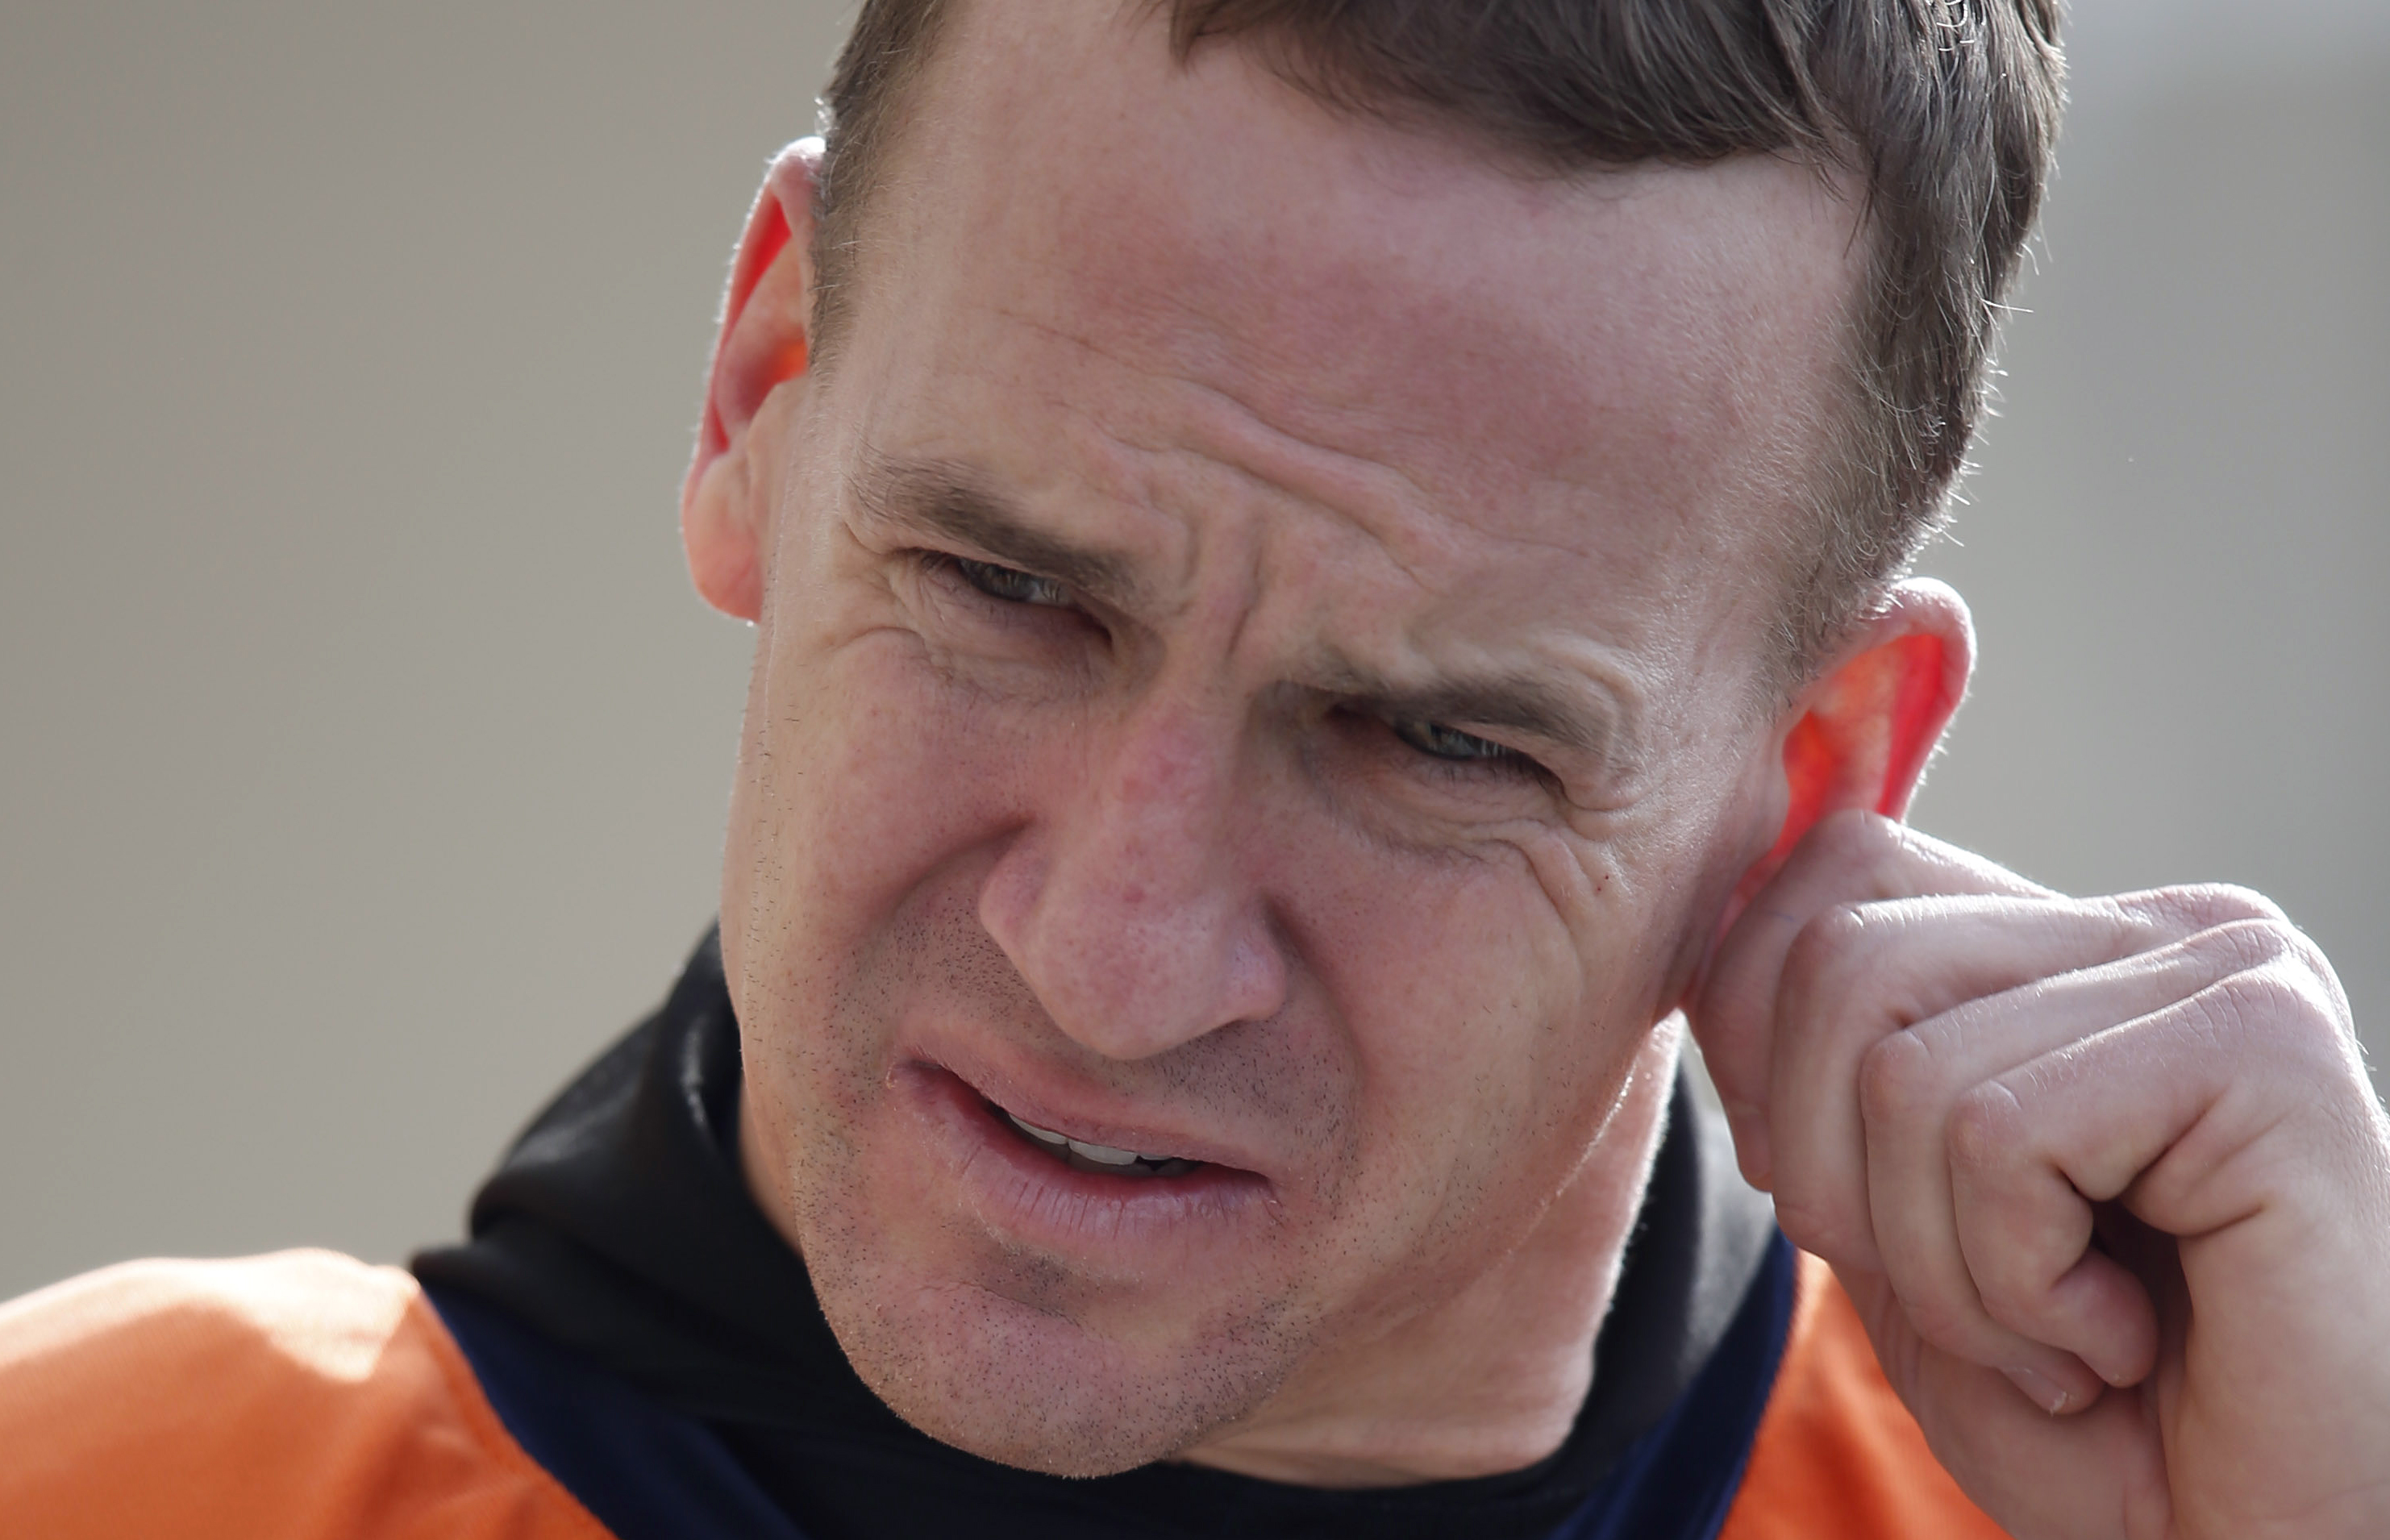 FILE - In this Jan. 13, 2016, file photo, Denver Broncos quarterback Peyton Manning heads to news conference after the team's NFL football practice, at the Broncos' headquarters in Englewood, Colo. No one ever really rooted against Peyton Manning, but boy